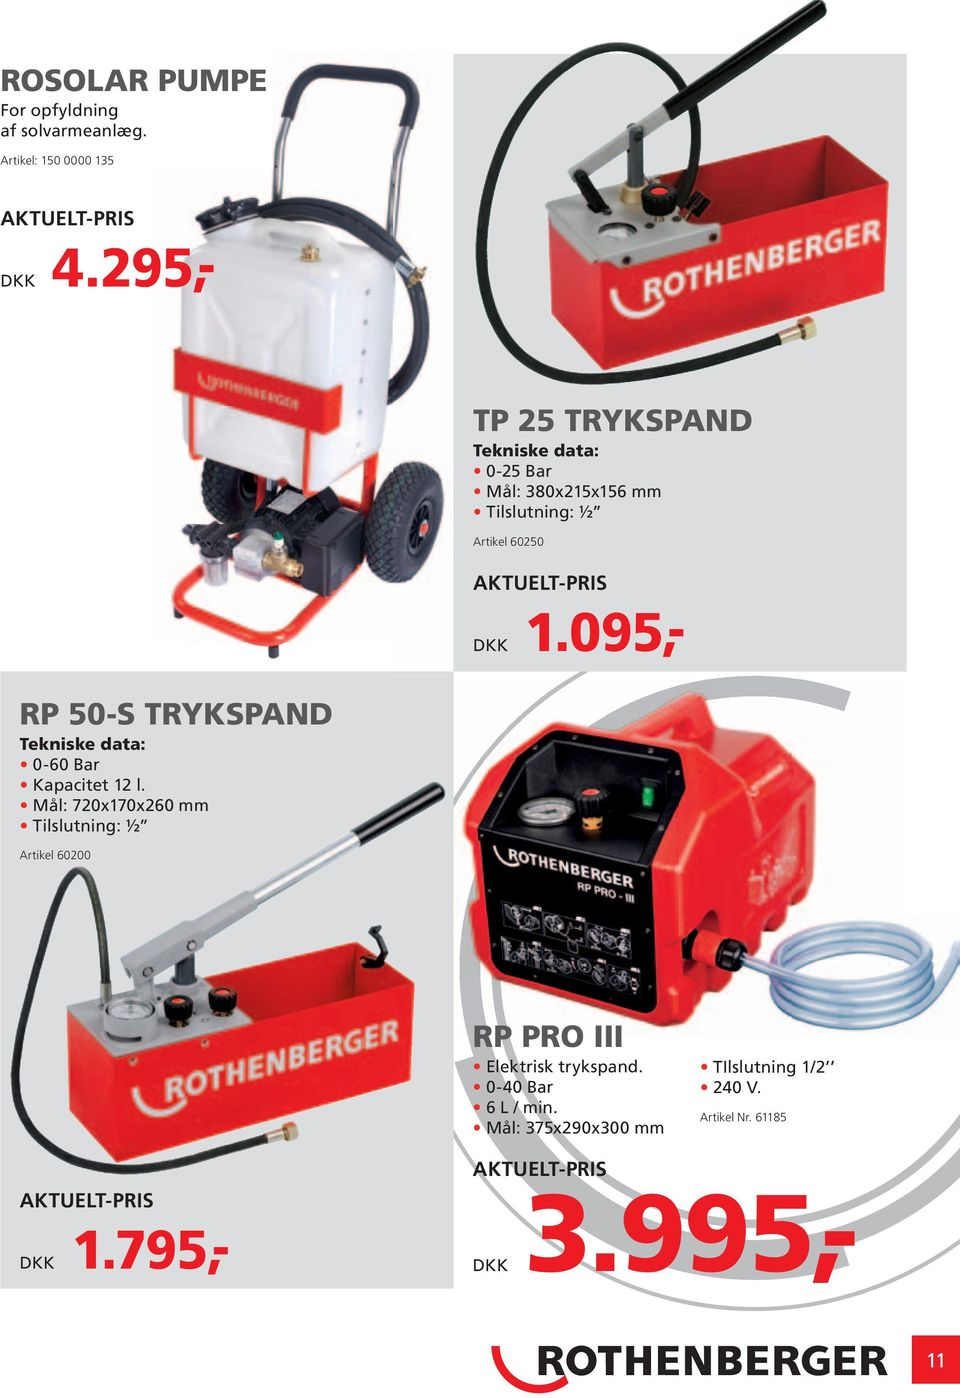 095,- RP 50-S TRYKSPAND Tekniske data: 0-60 Bar Kapacitet 12 l.